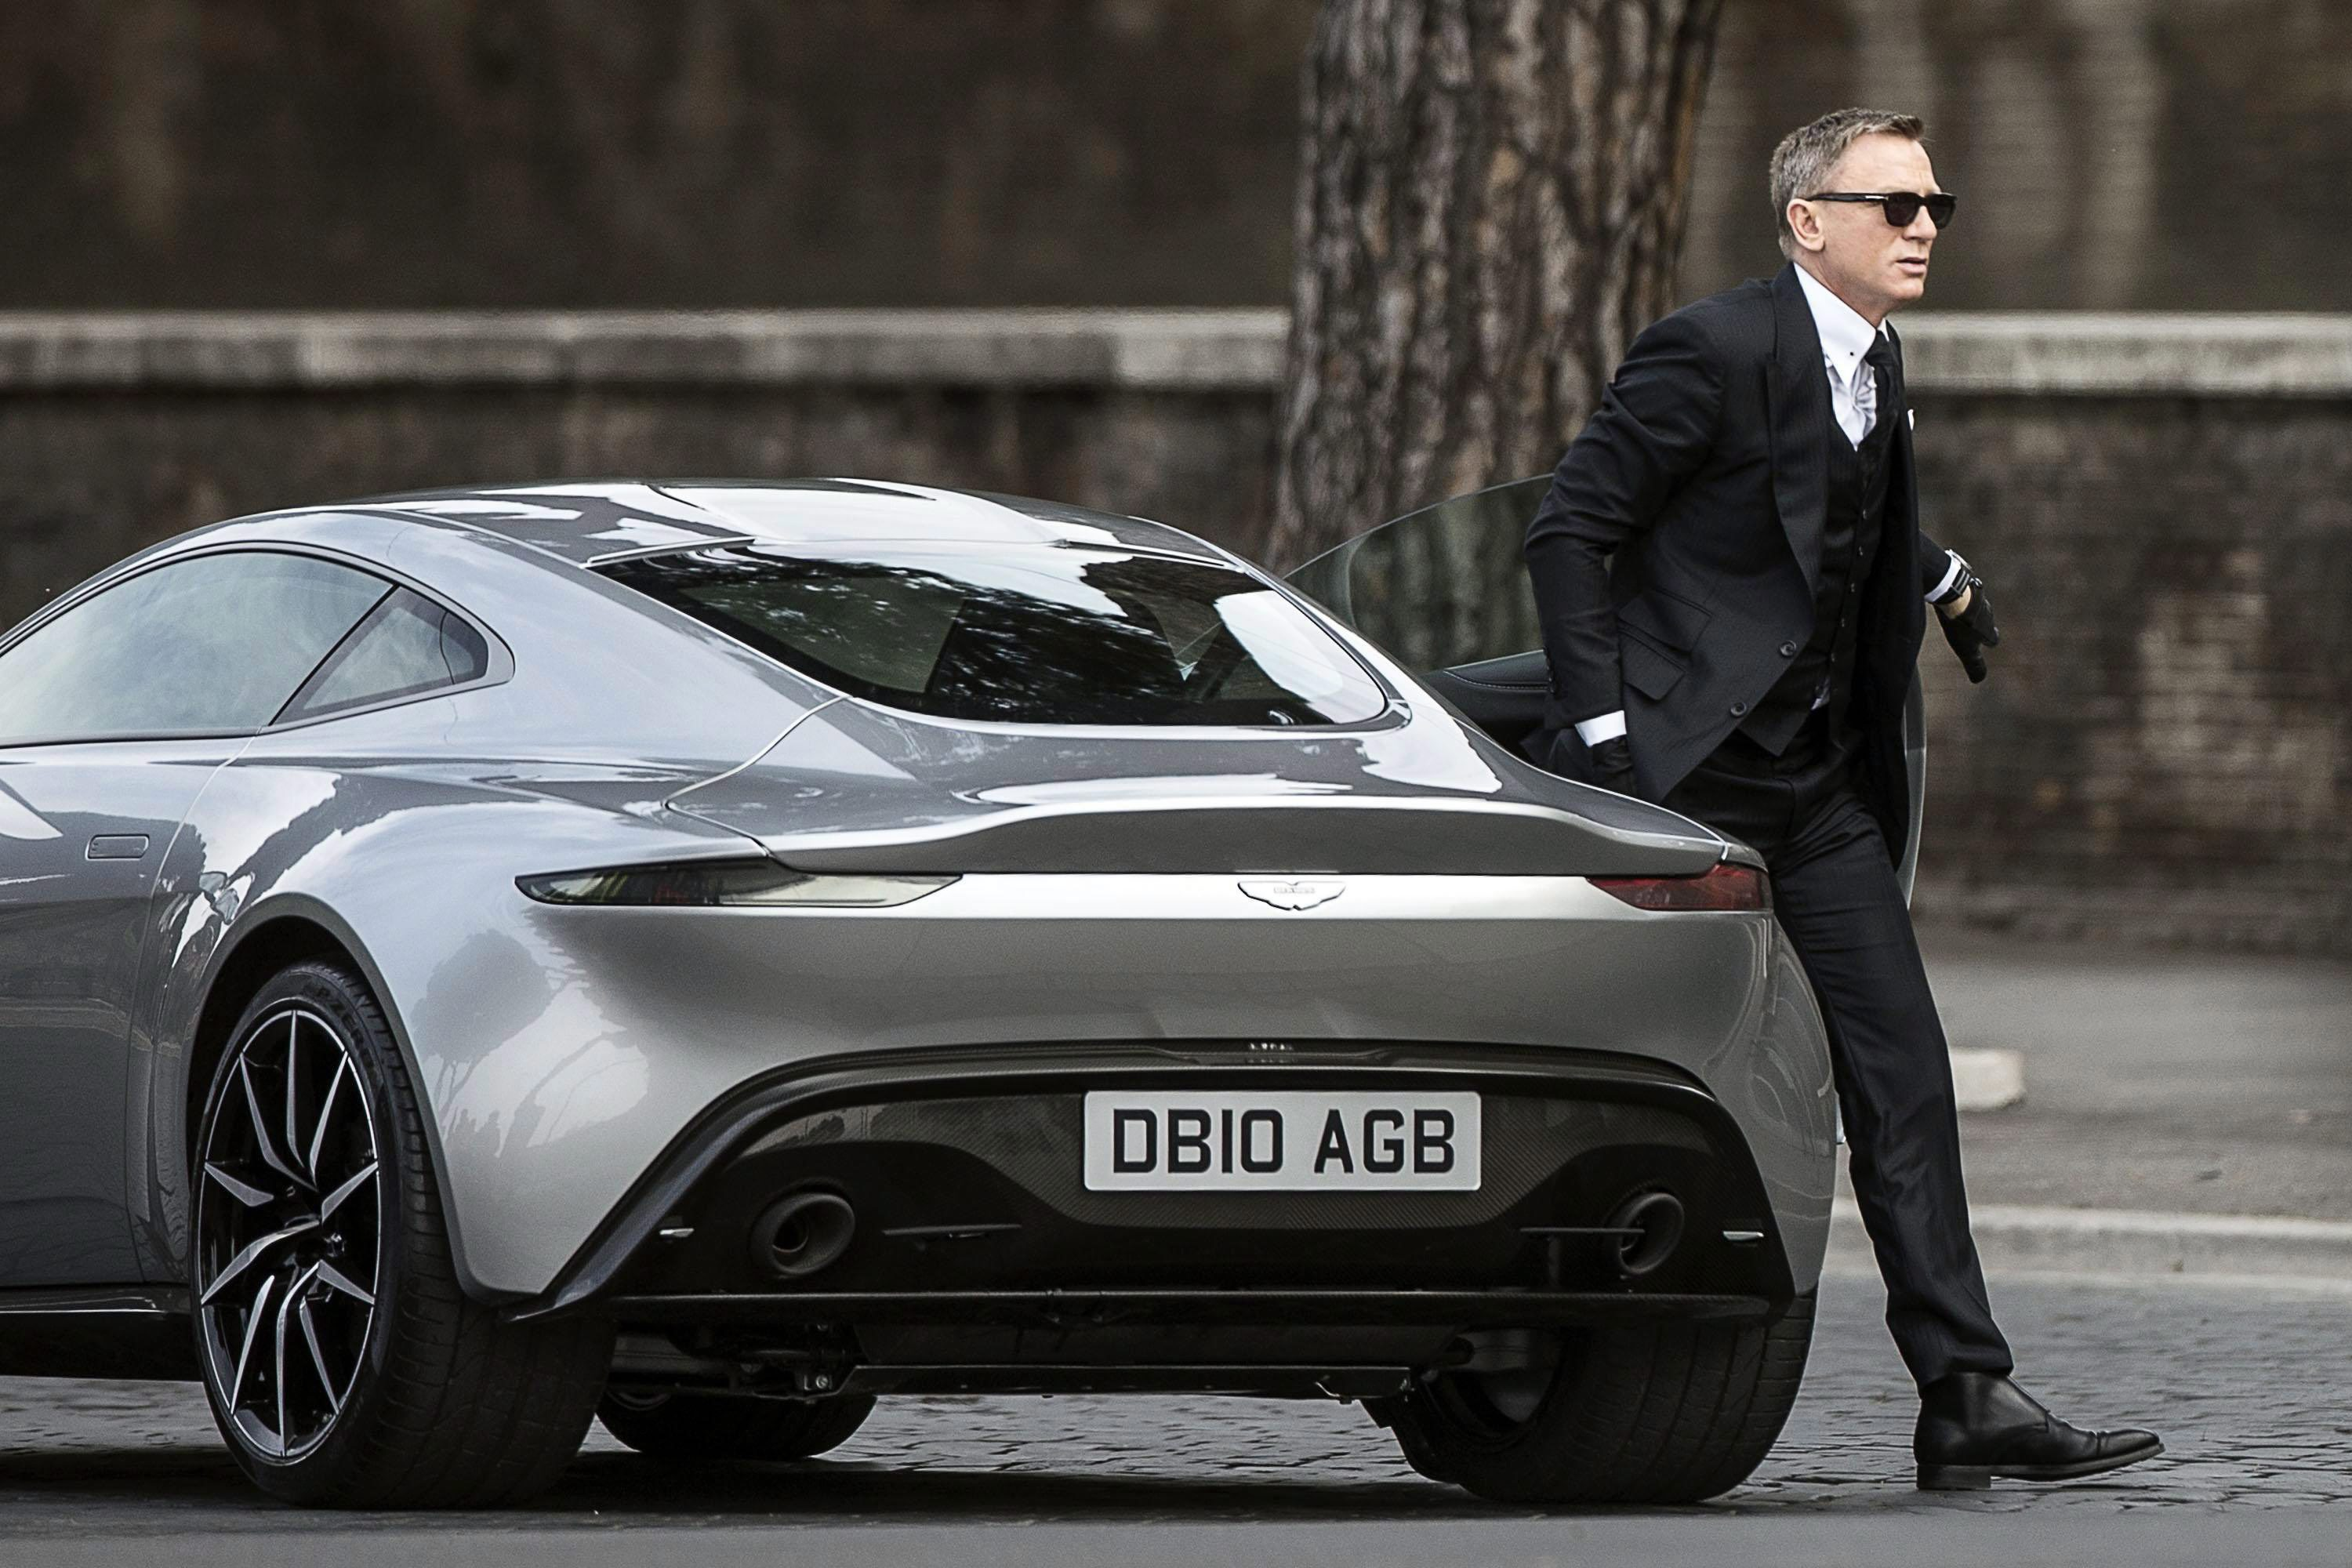 Daniel Craig Admits He Fakes It When Driving James Bond S Aston Martin Db5 Says He Isn T Allowed To Film High Speed Scenes Any More Etcanada Com